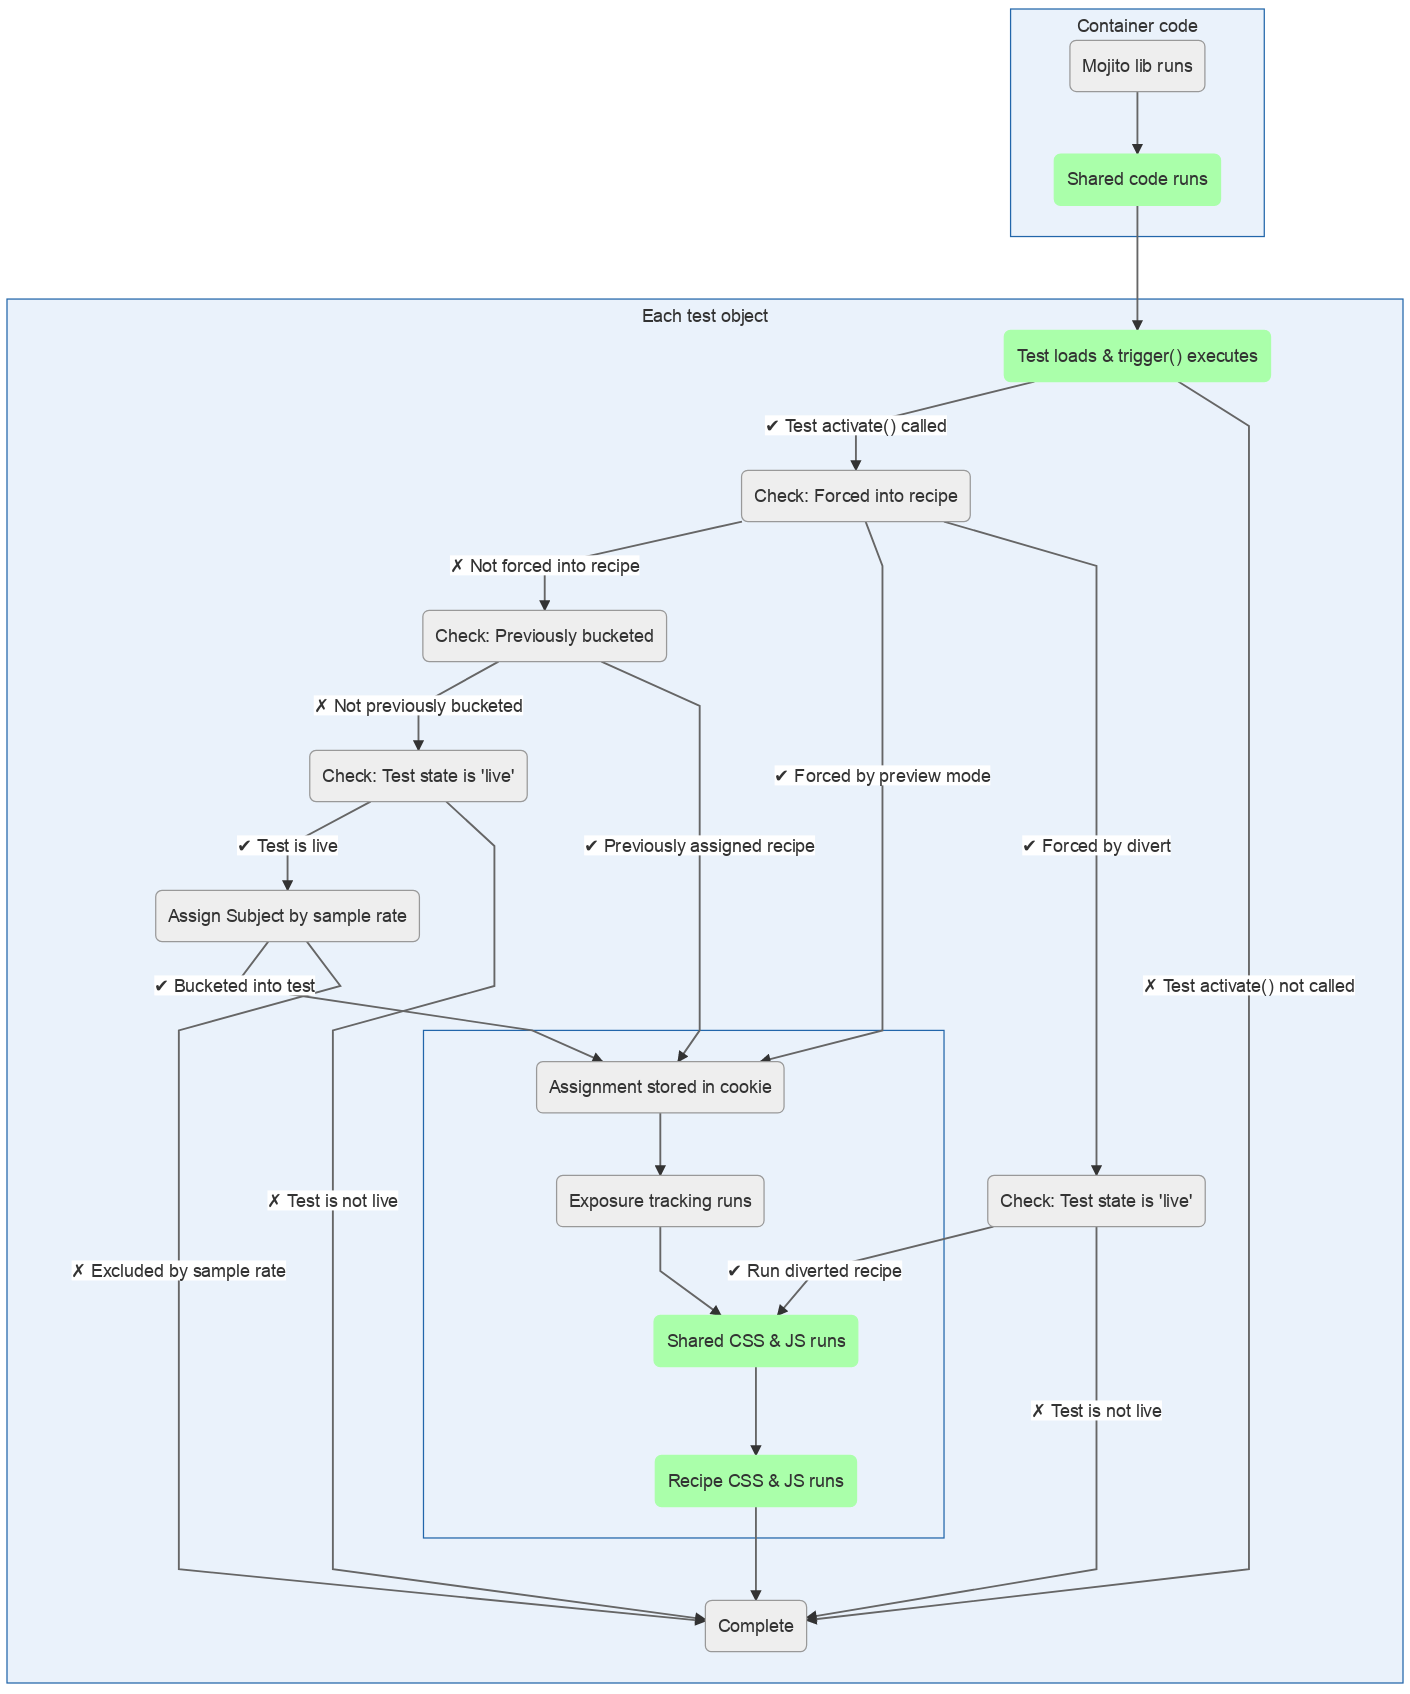 Mojito JS Delivery split test activation and order of execution flowchart.